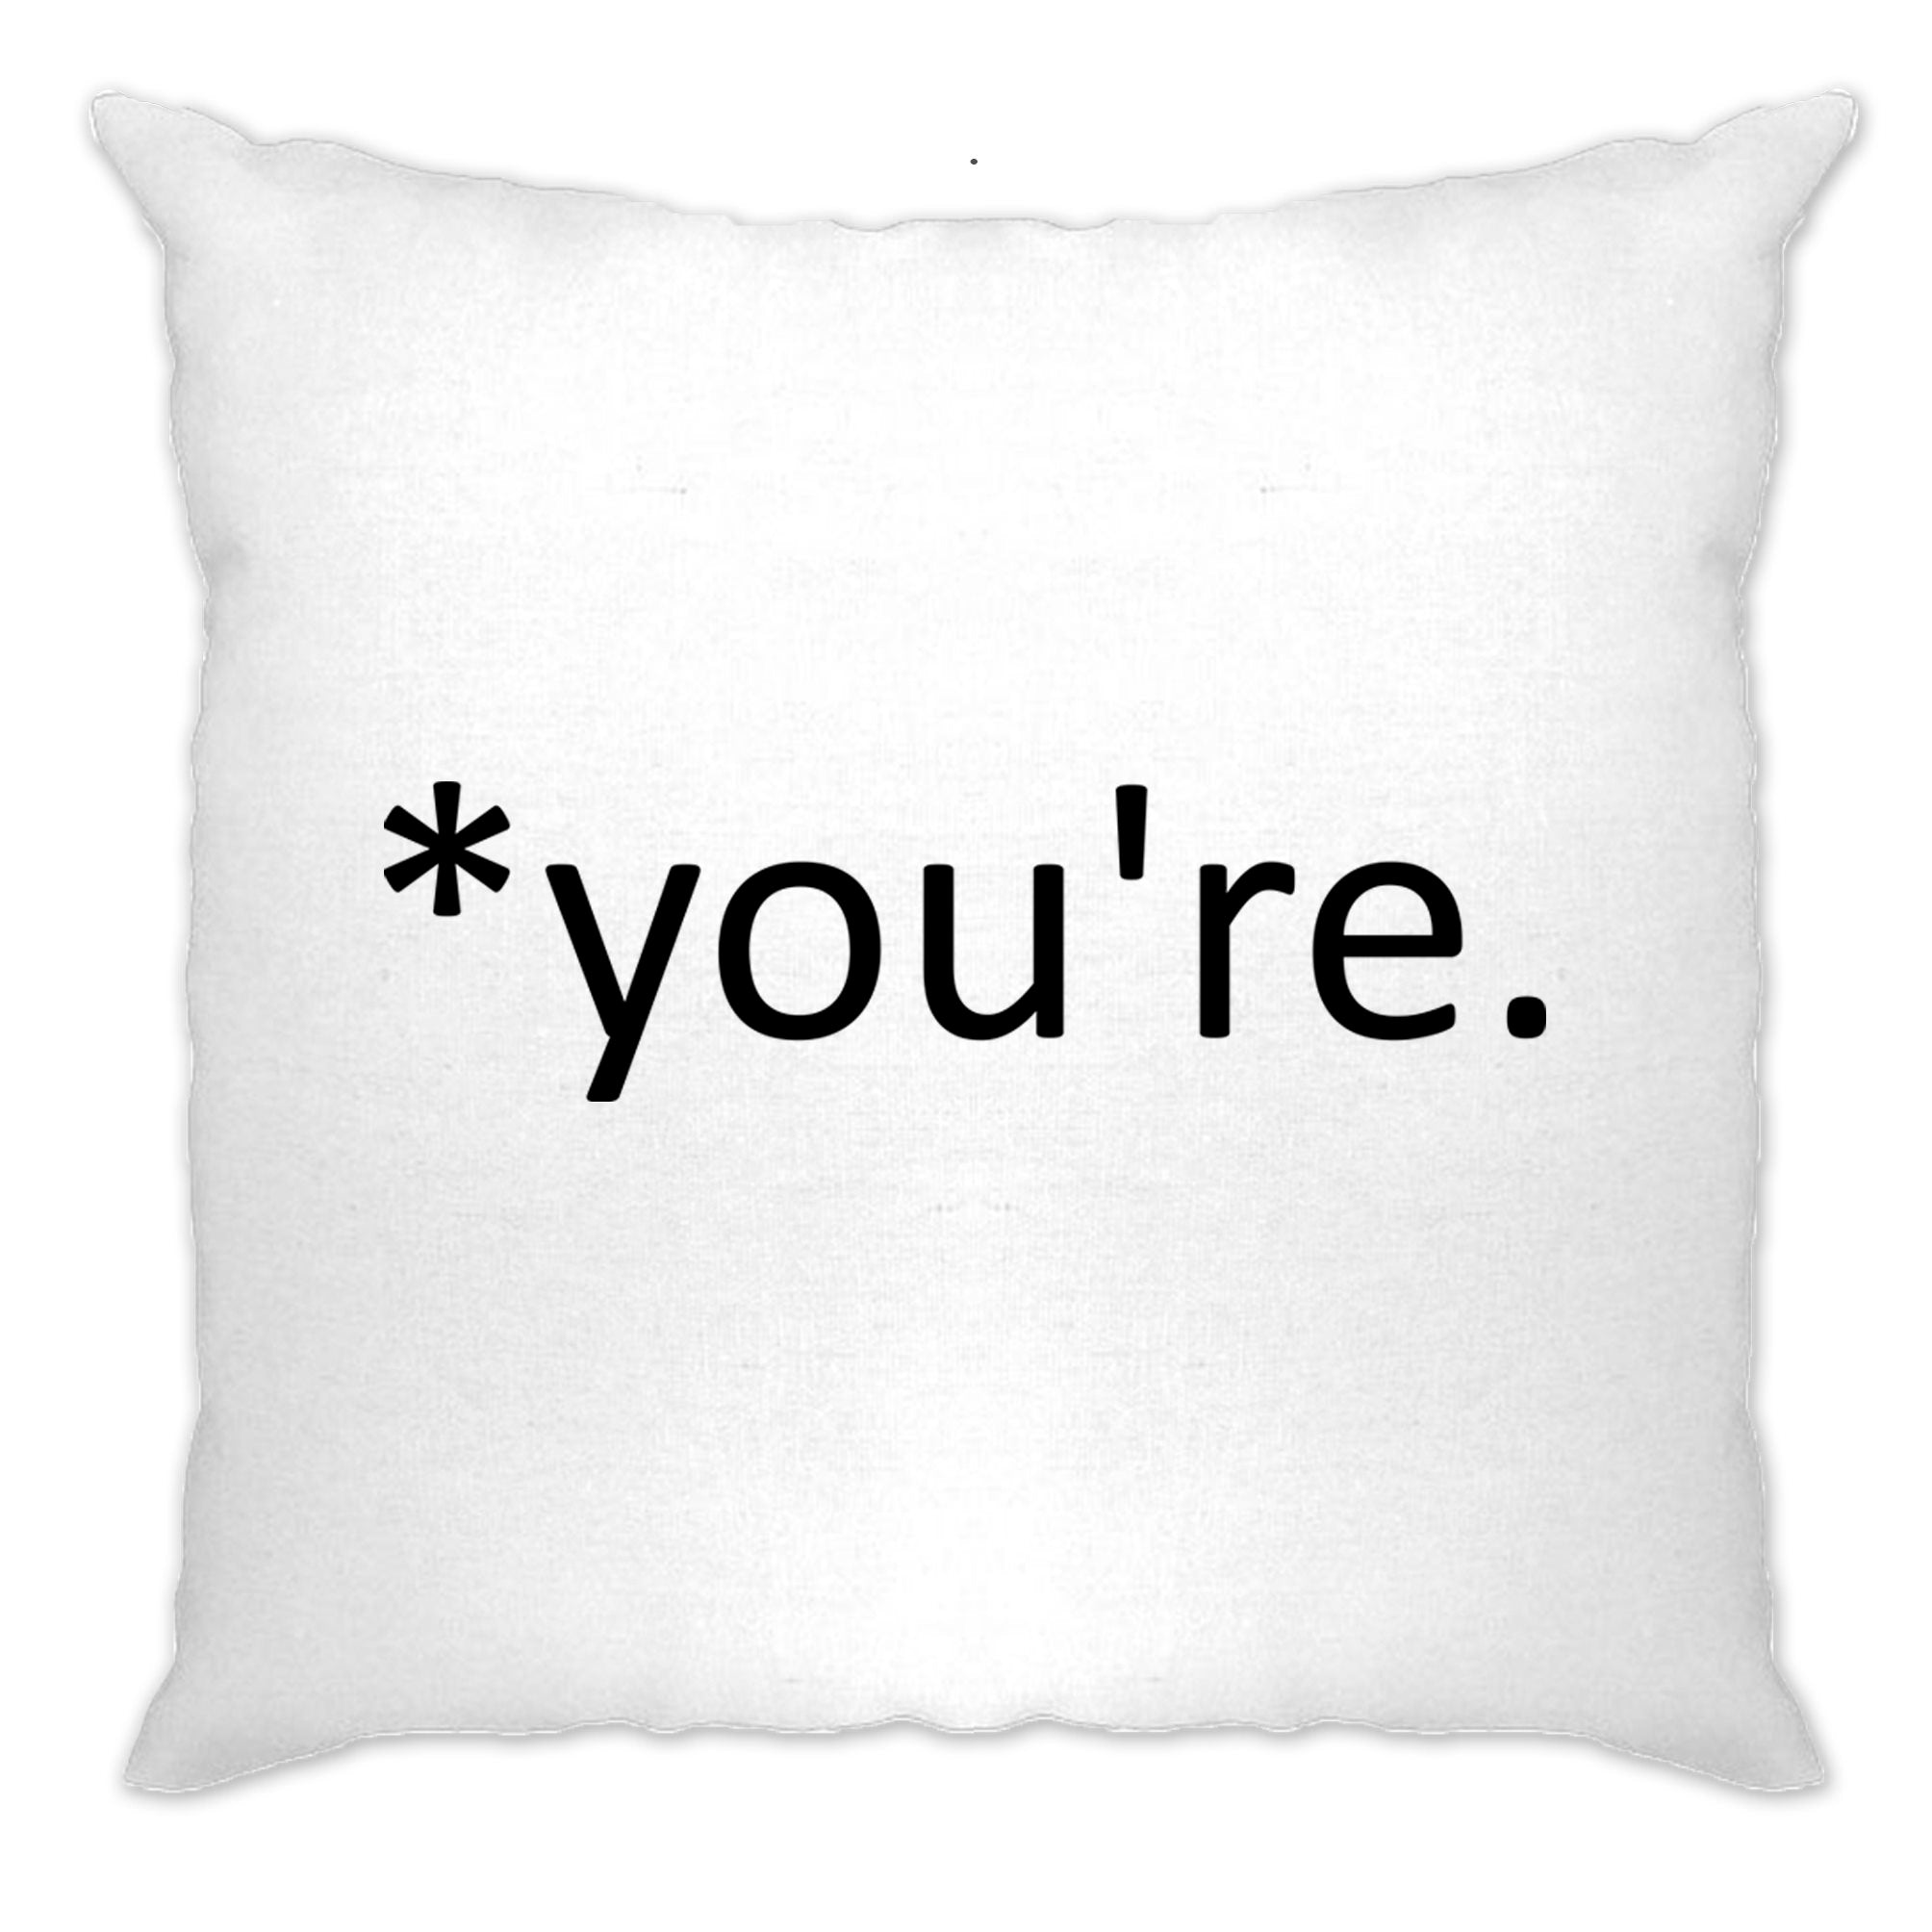 Correction of the Proper 'You're' Funny Cushion Cover Joke